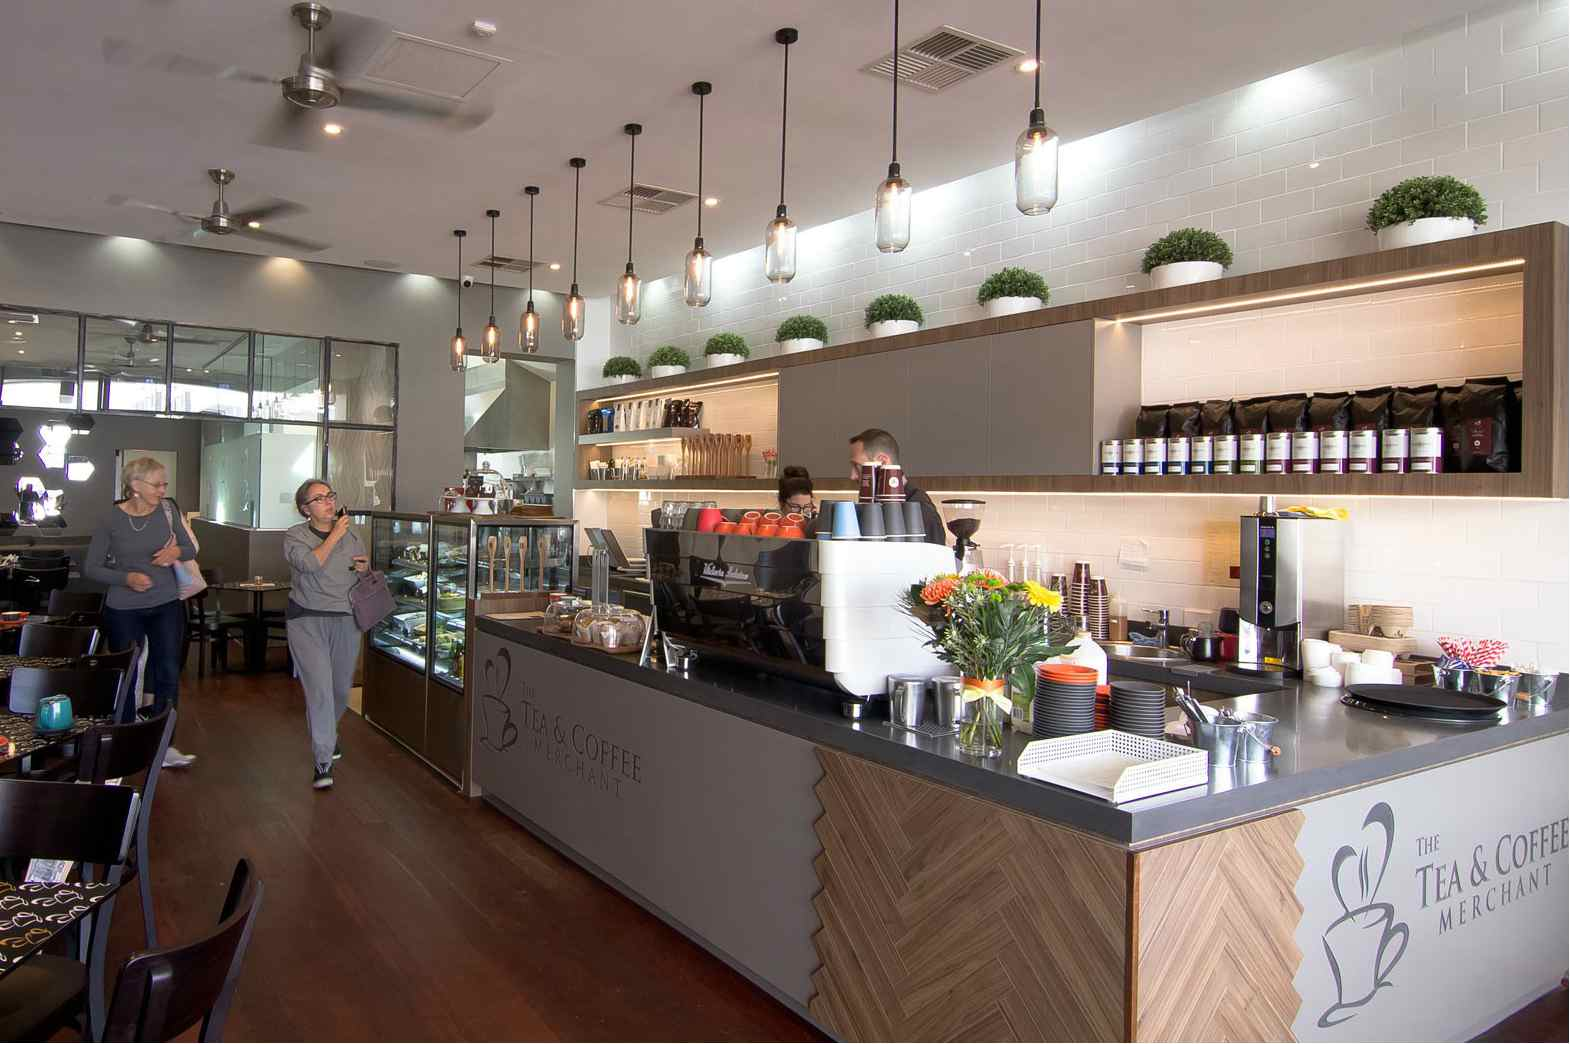 Tea & coffee merchant cafe design in Perth